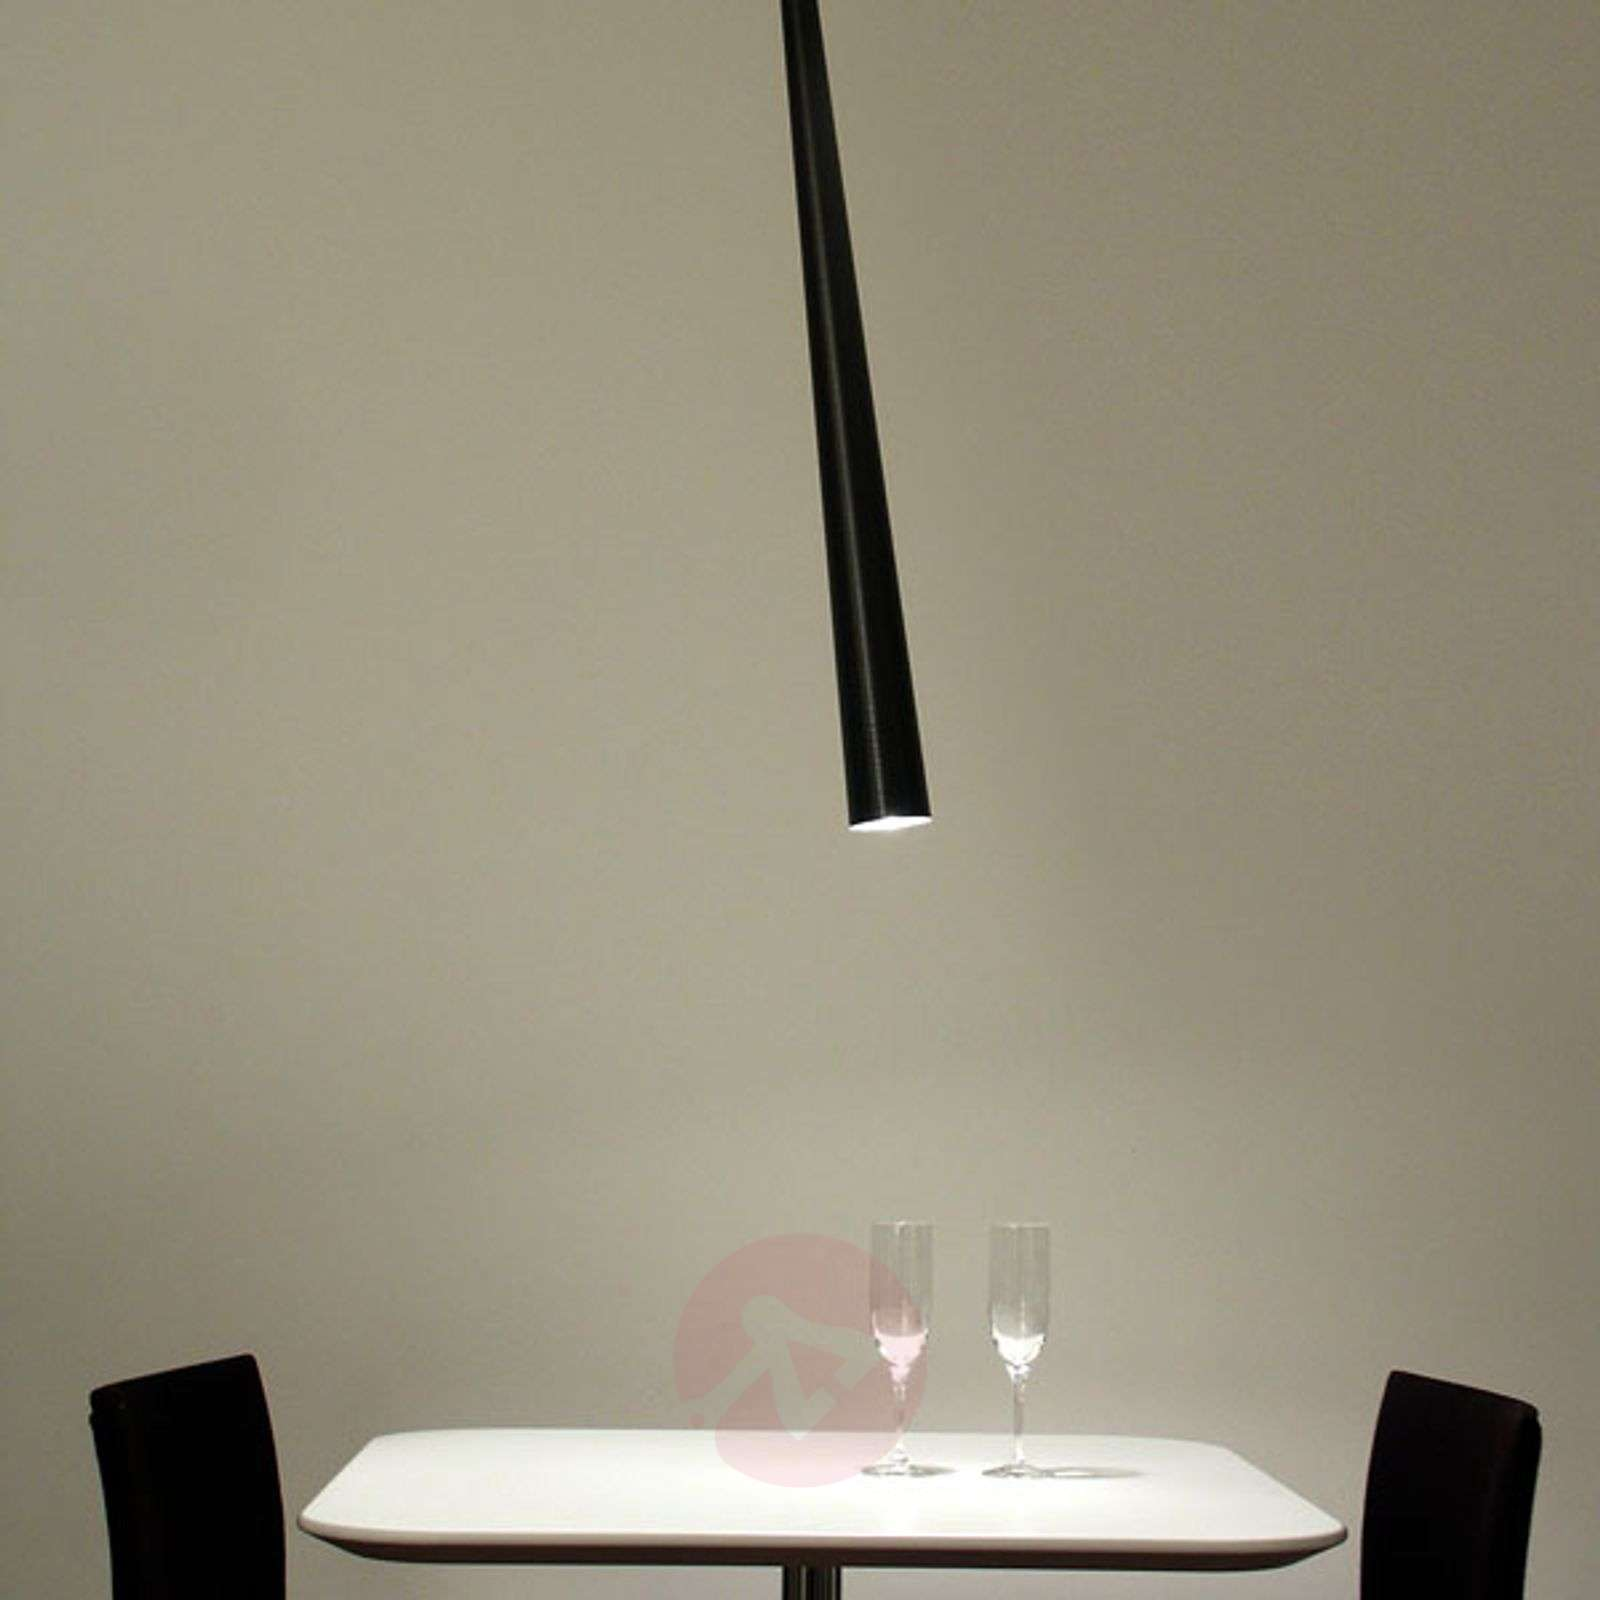 Design-hanglamp Drink-5501020X-01